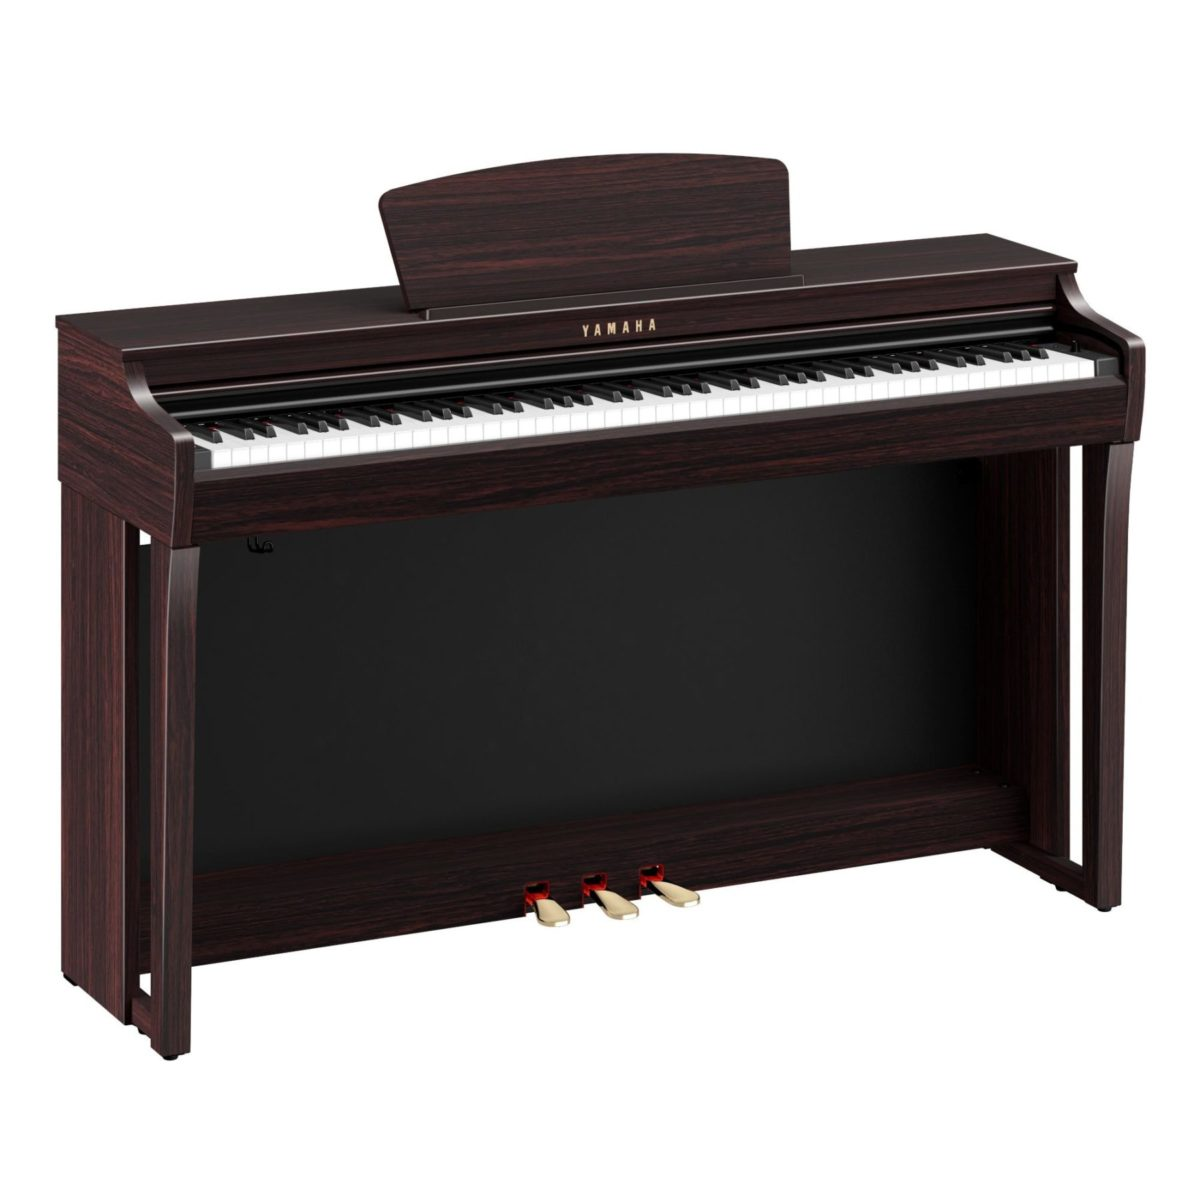 Yamaha CLP-725R Digital Piano